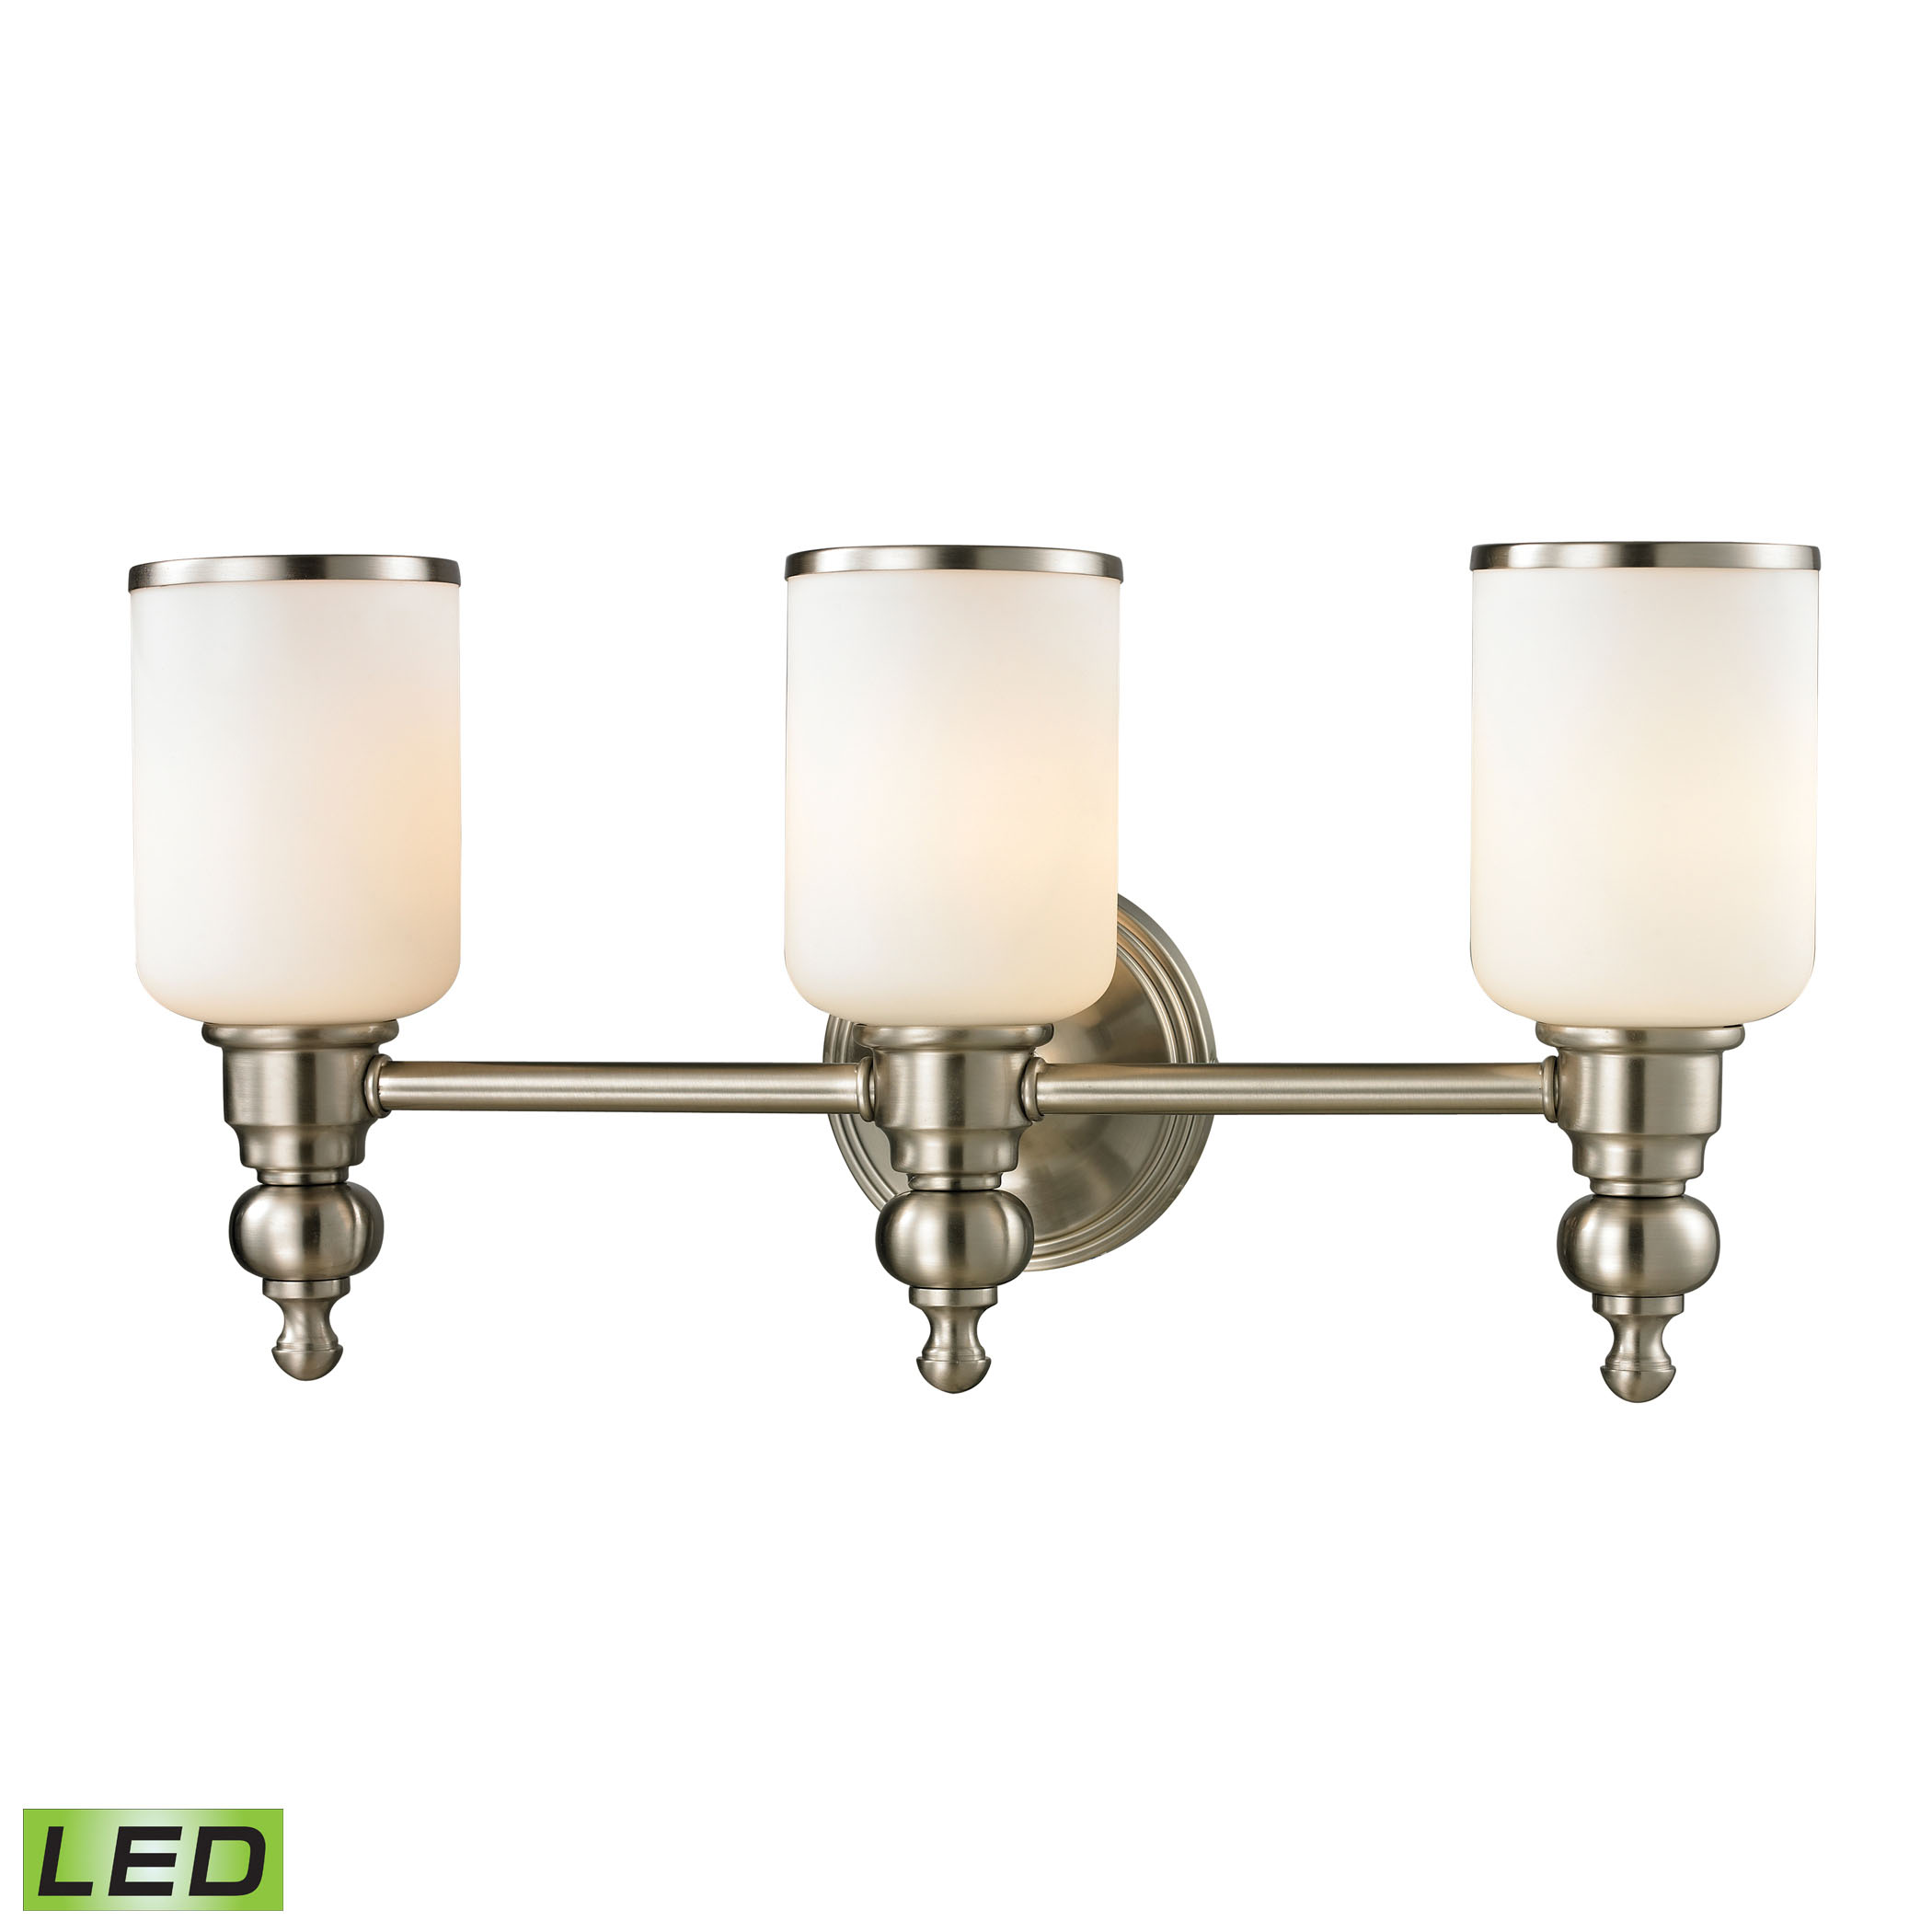 Bristol Collection 3 light bath in Brushed Nickel - LED, 800 Lumens (2400 Lumens Total) with Full Sc